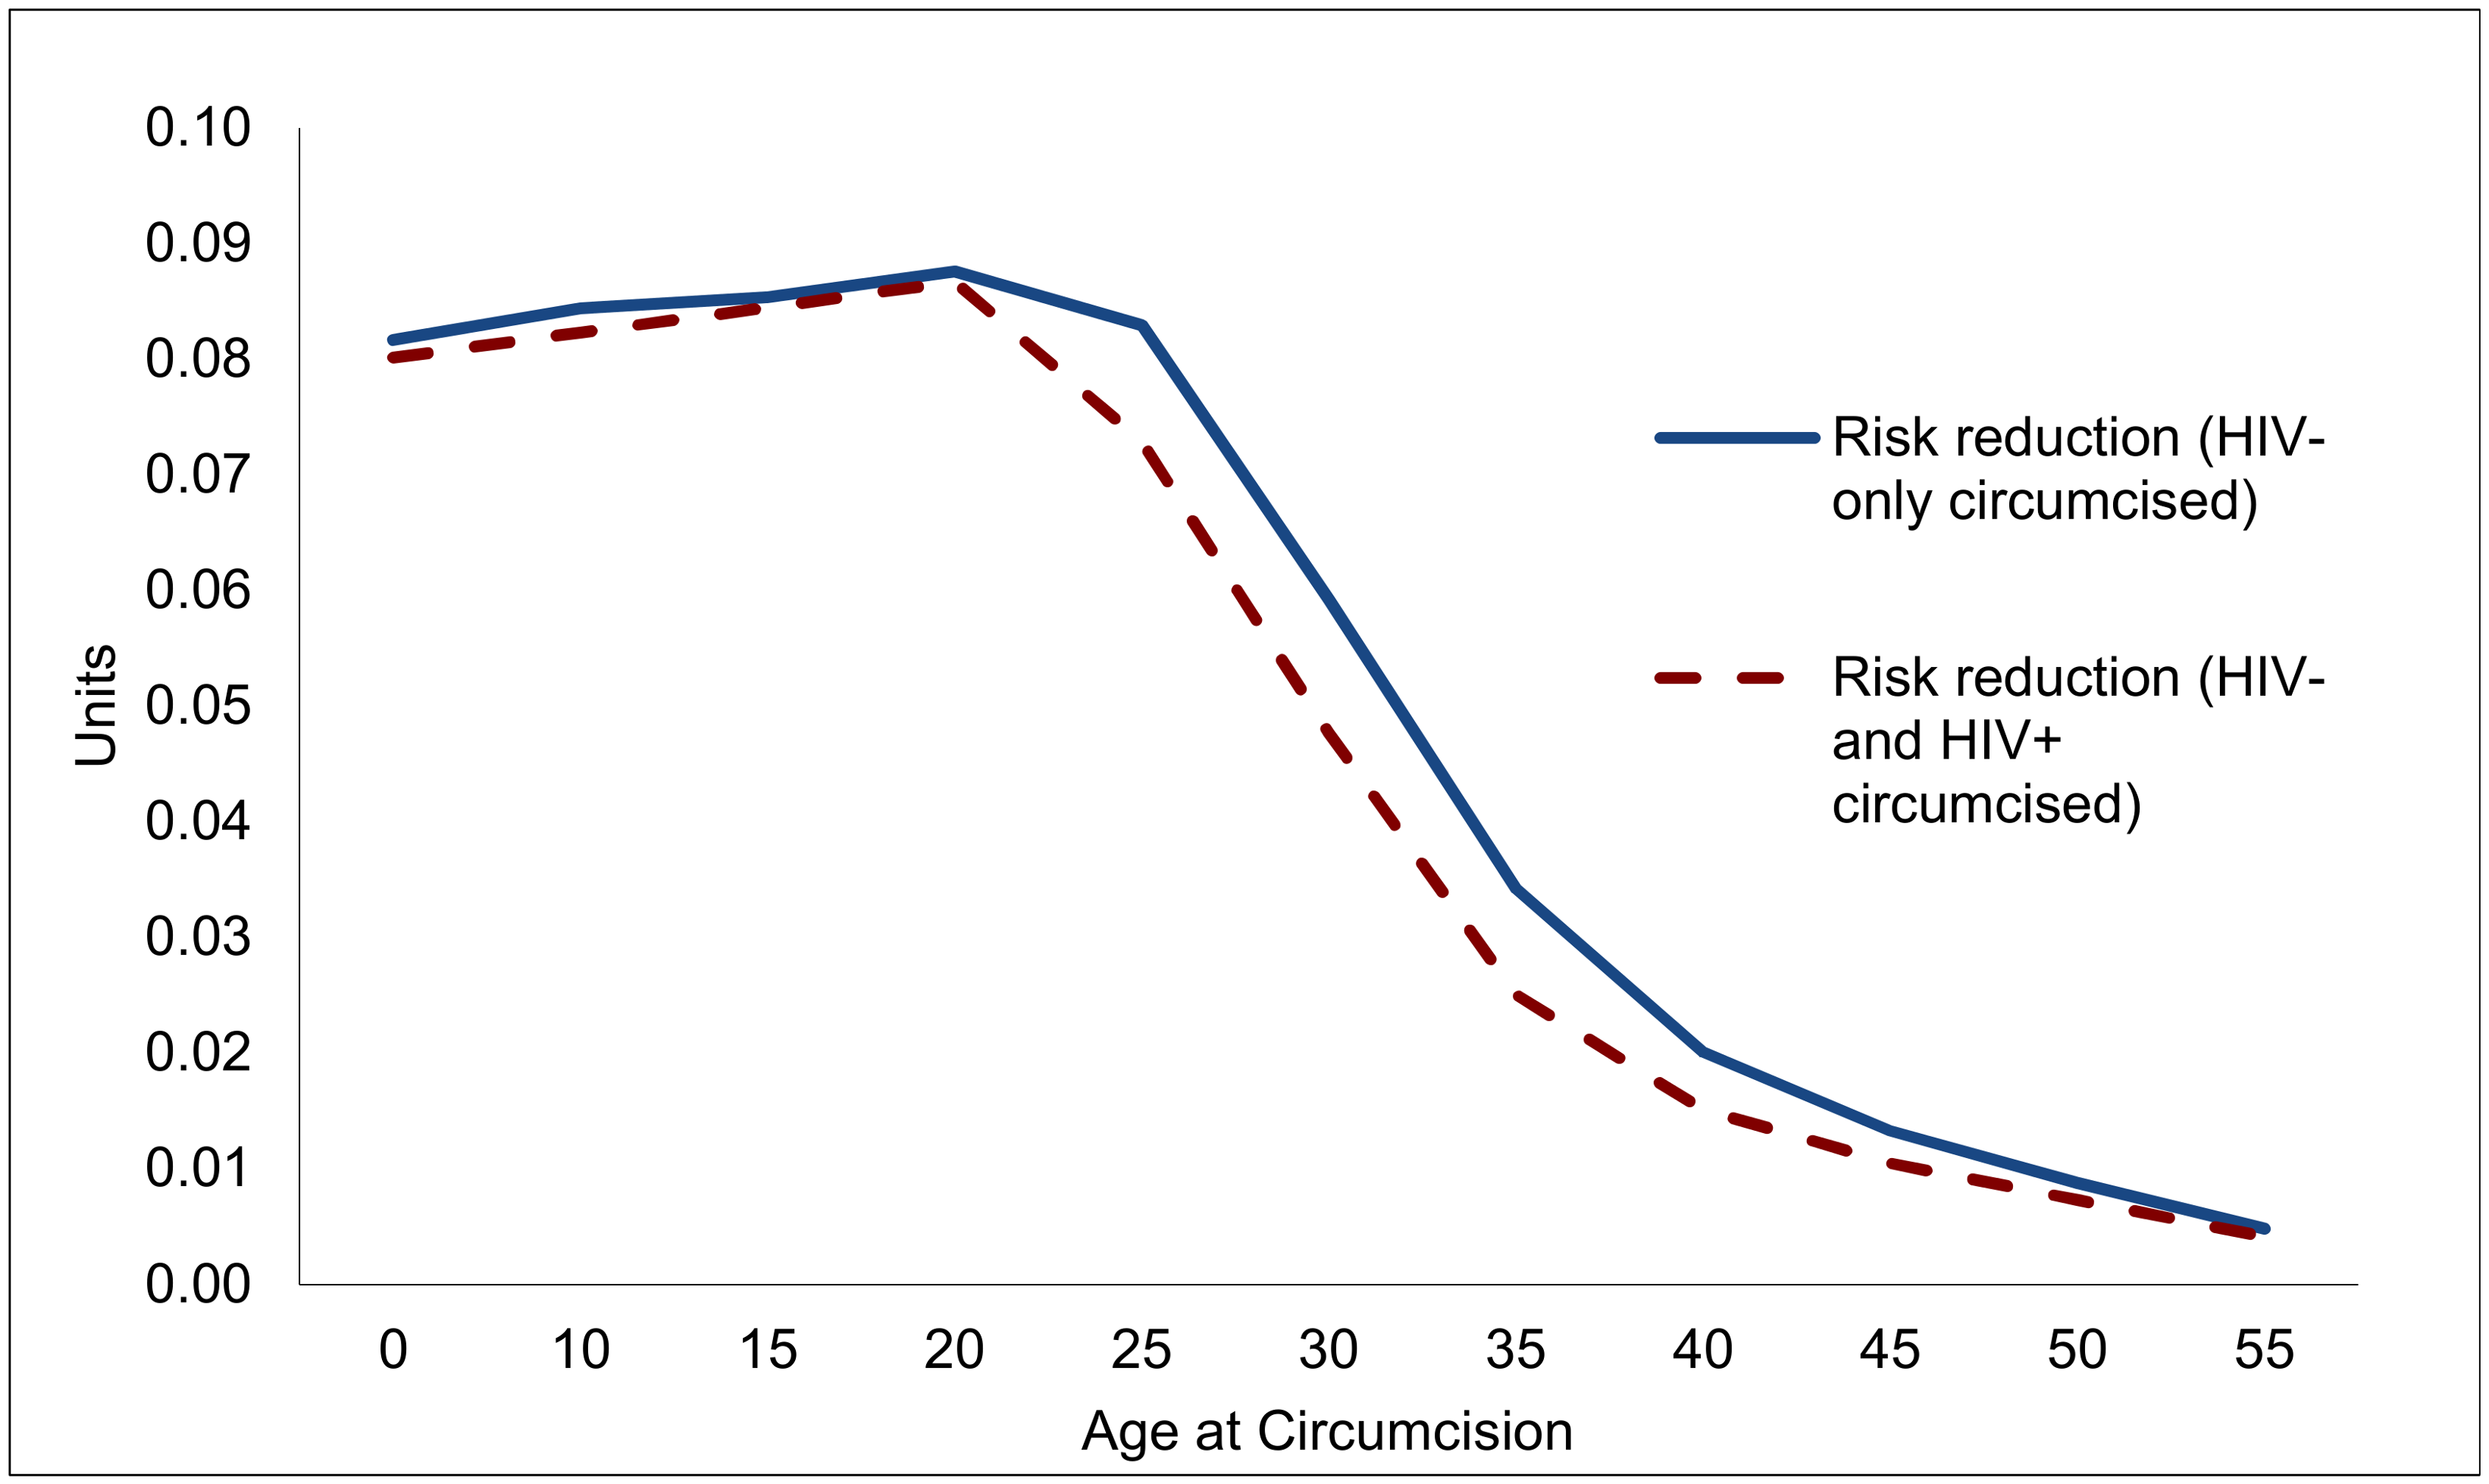 Reduction in lifetime risk of contracting HIV for individual circumcised, by age at circumcision (units).